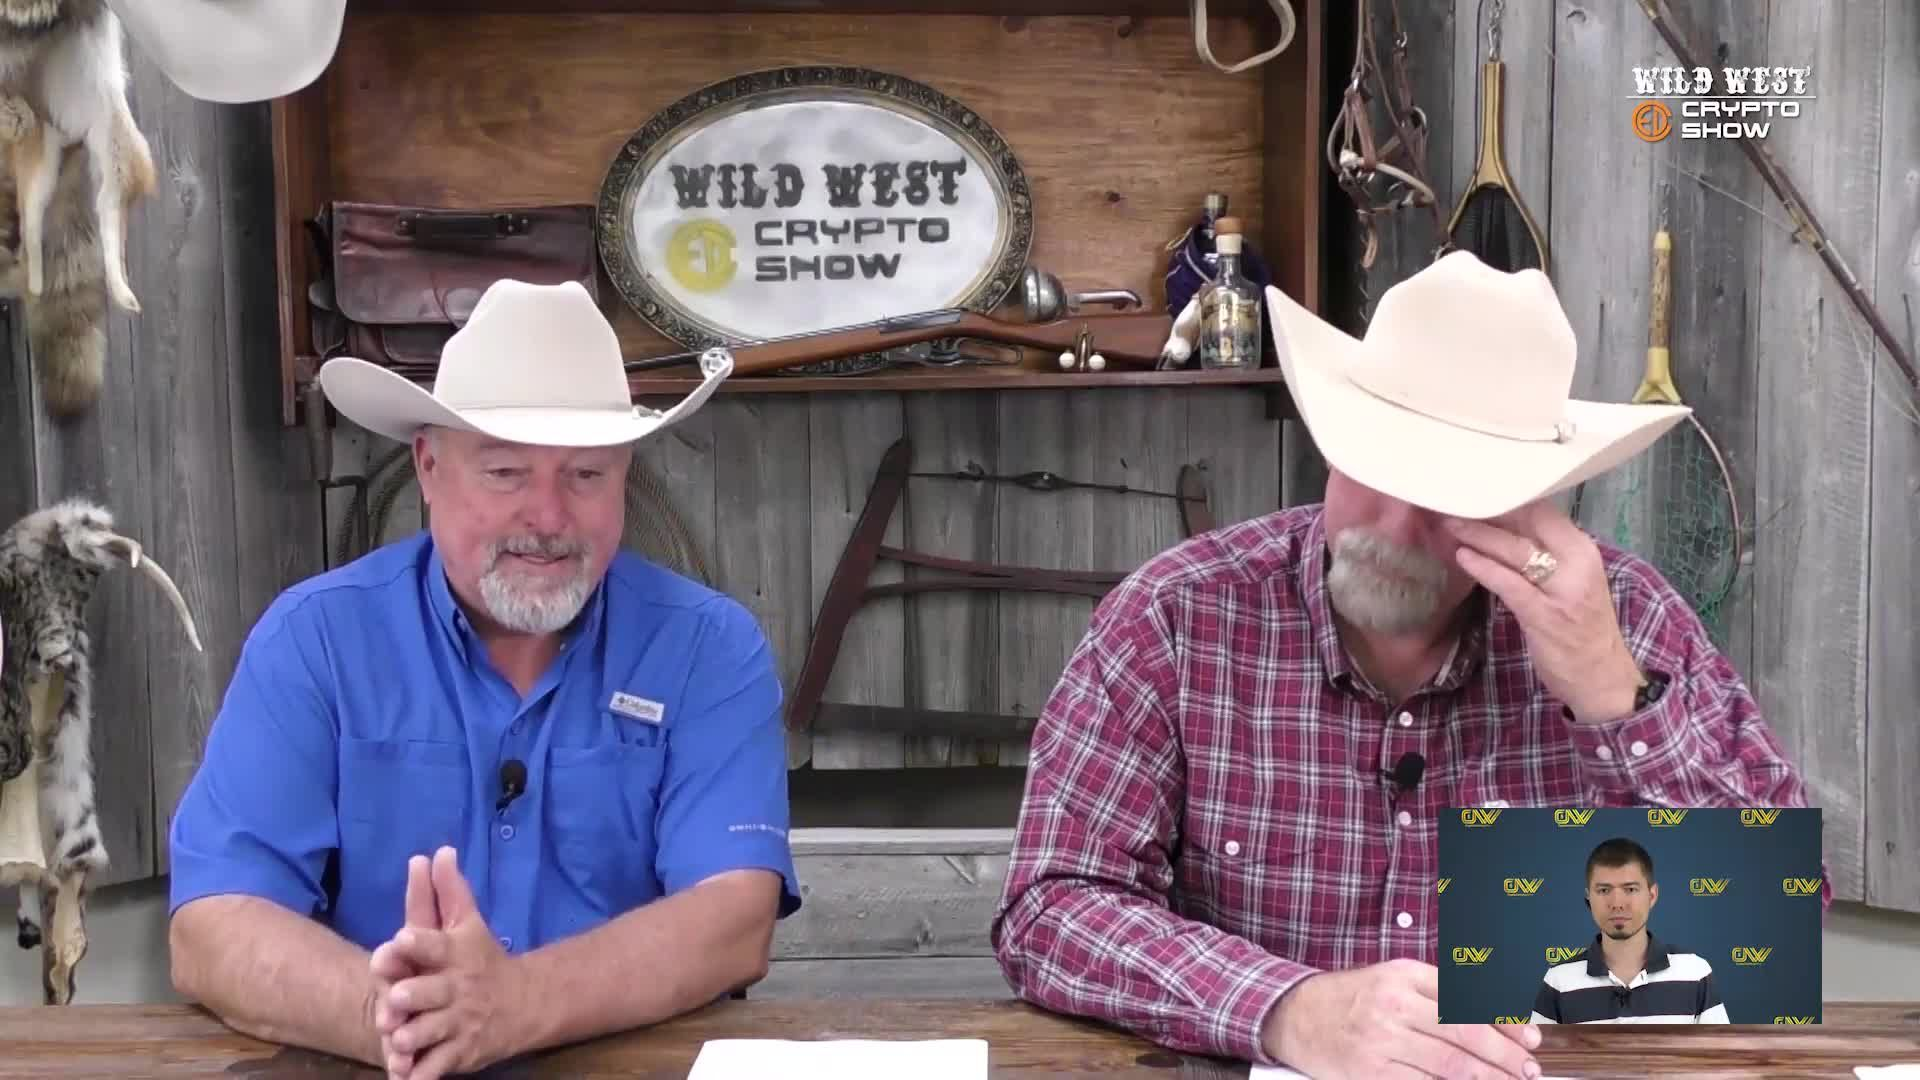 CryptoCurrencyWire Videos-The Wild West Crypto Show Features Paul Harvey Segment for Independence Day | CryptoCurrencyWire on The Wild West Crypto Show | Episode 115